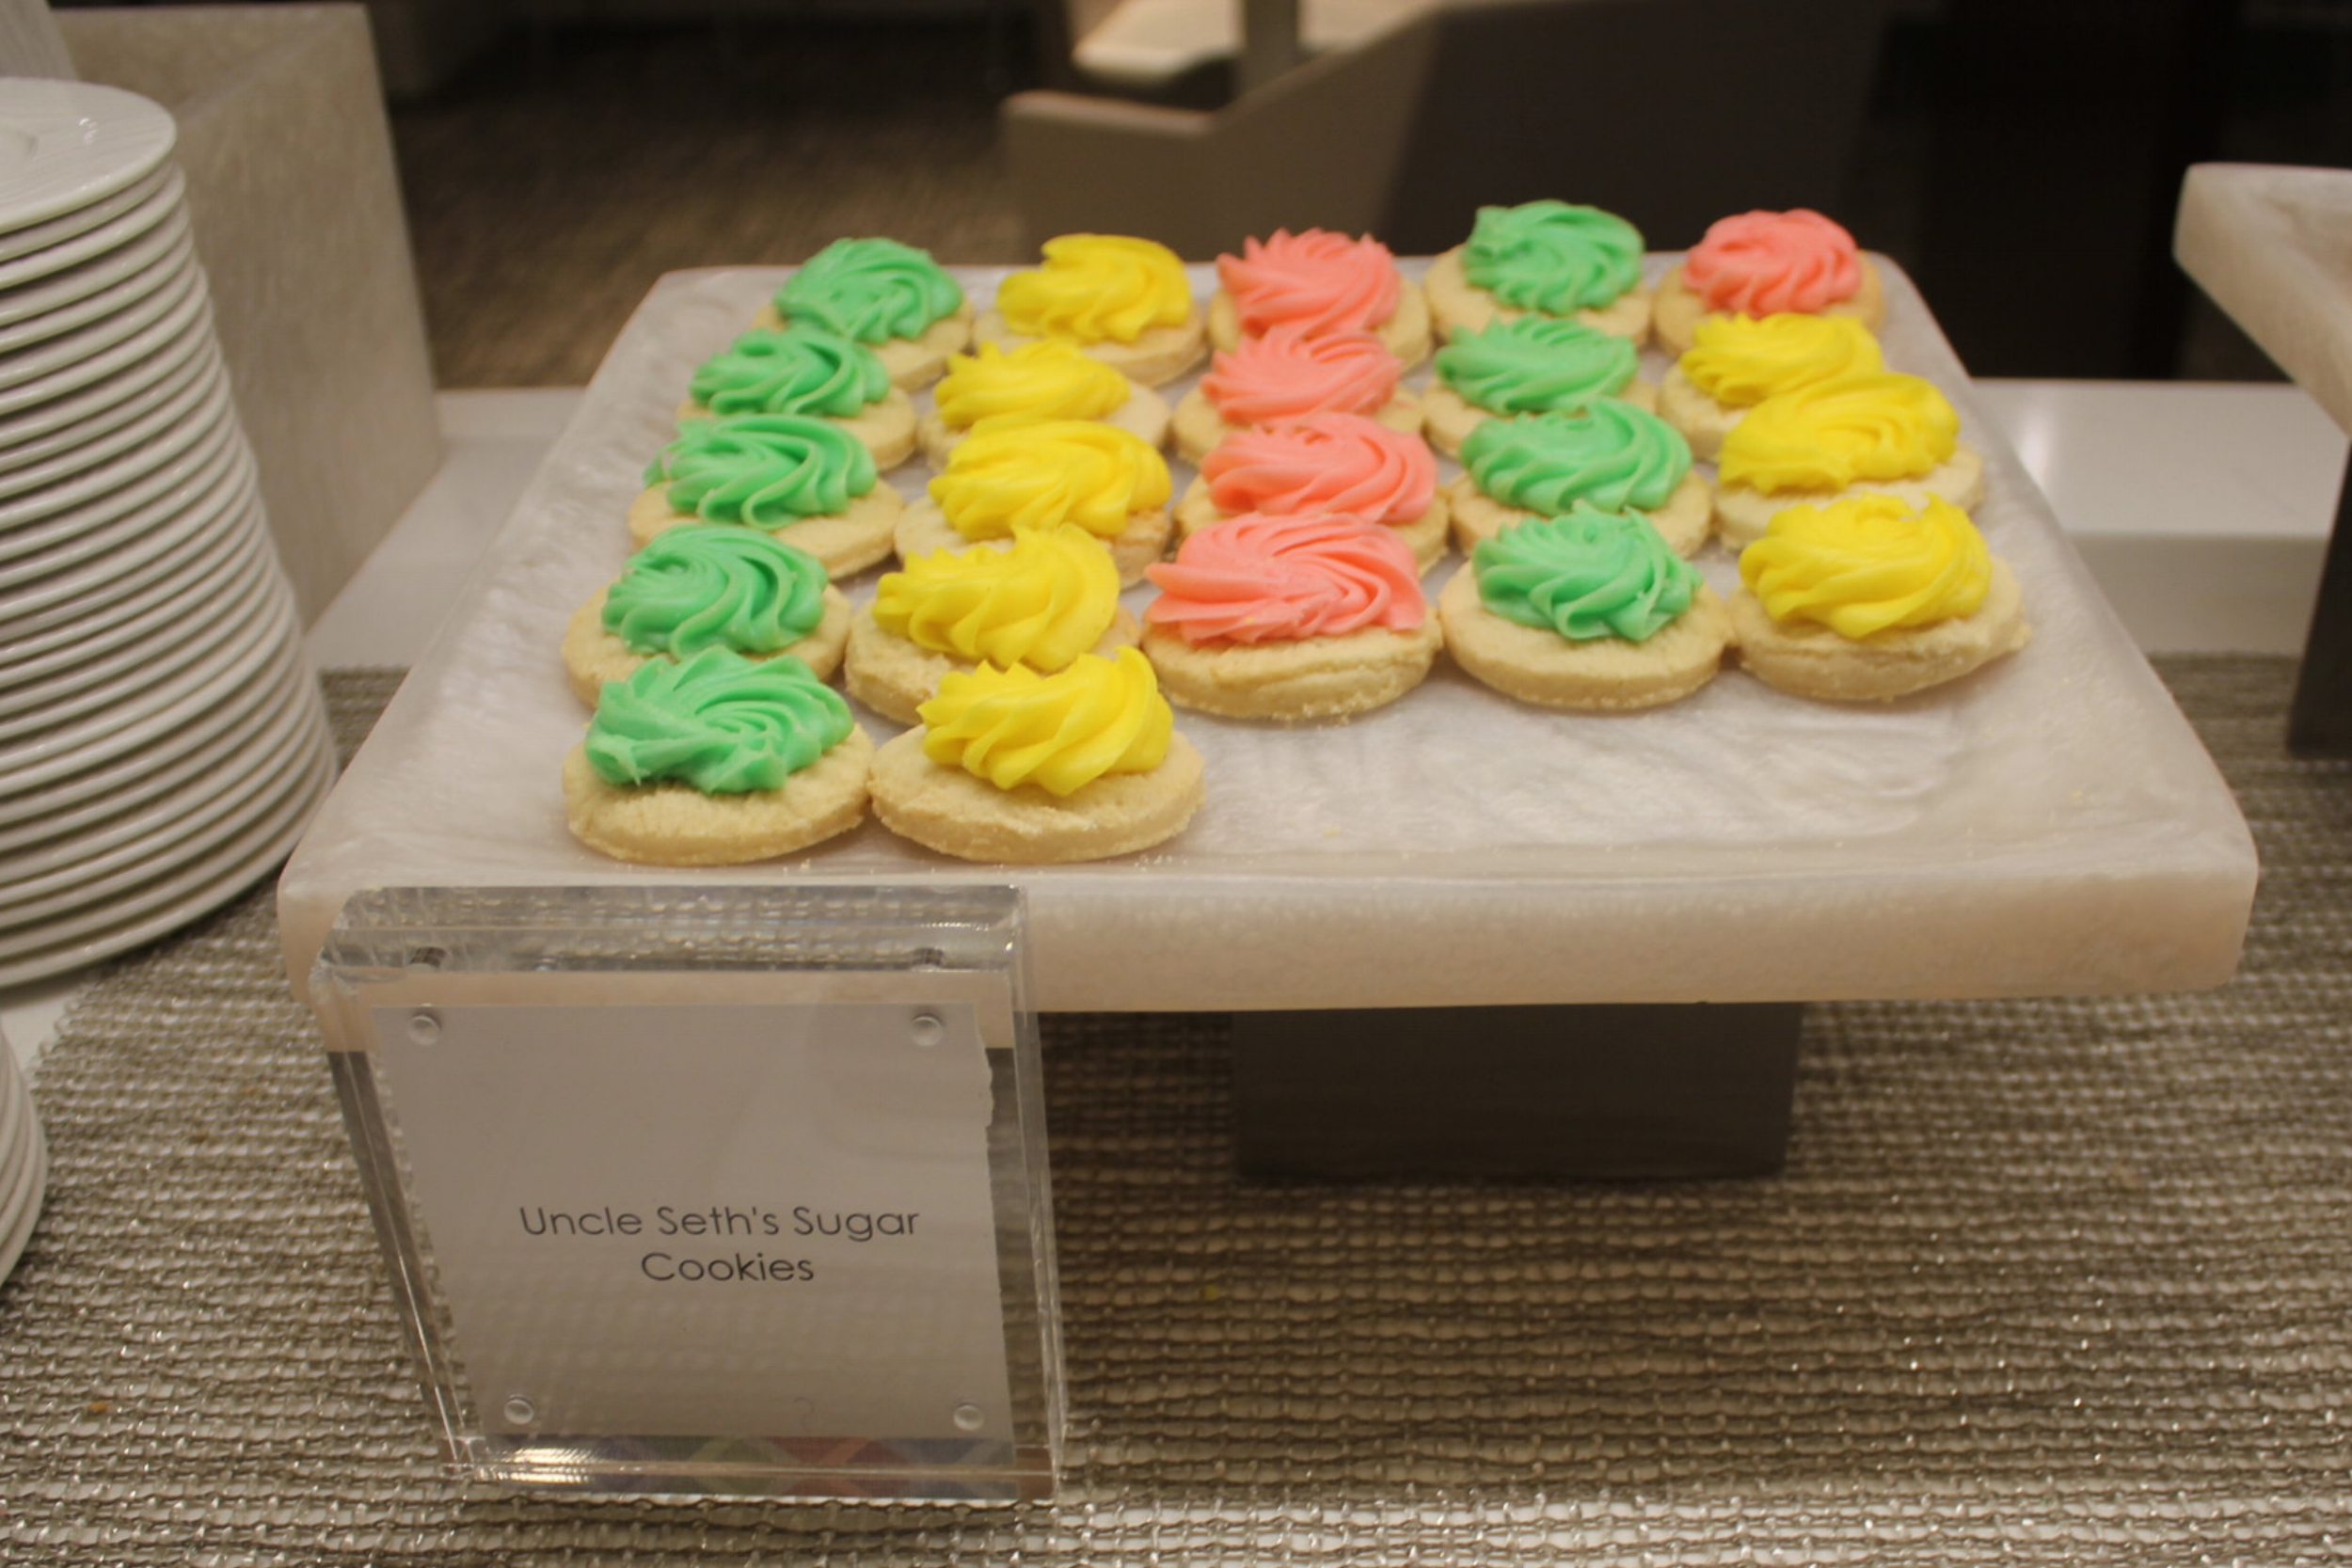 Centurion Lounge Seattle – Uncle Seth's Sugar Cookies